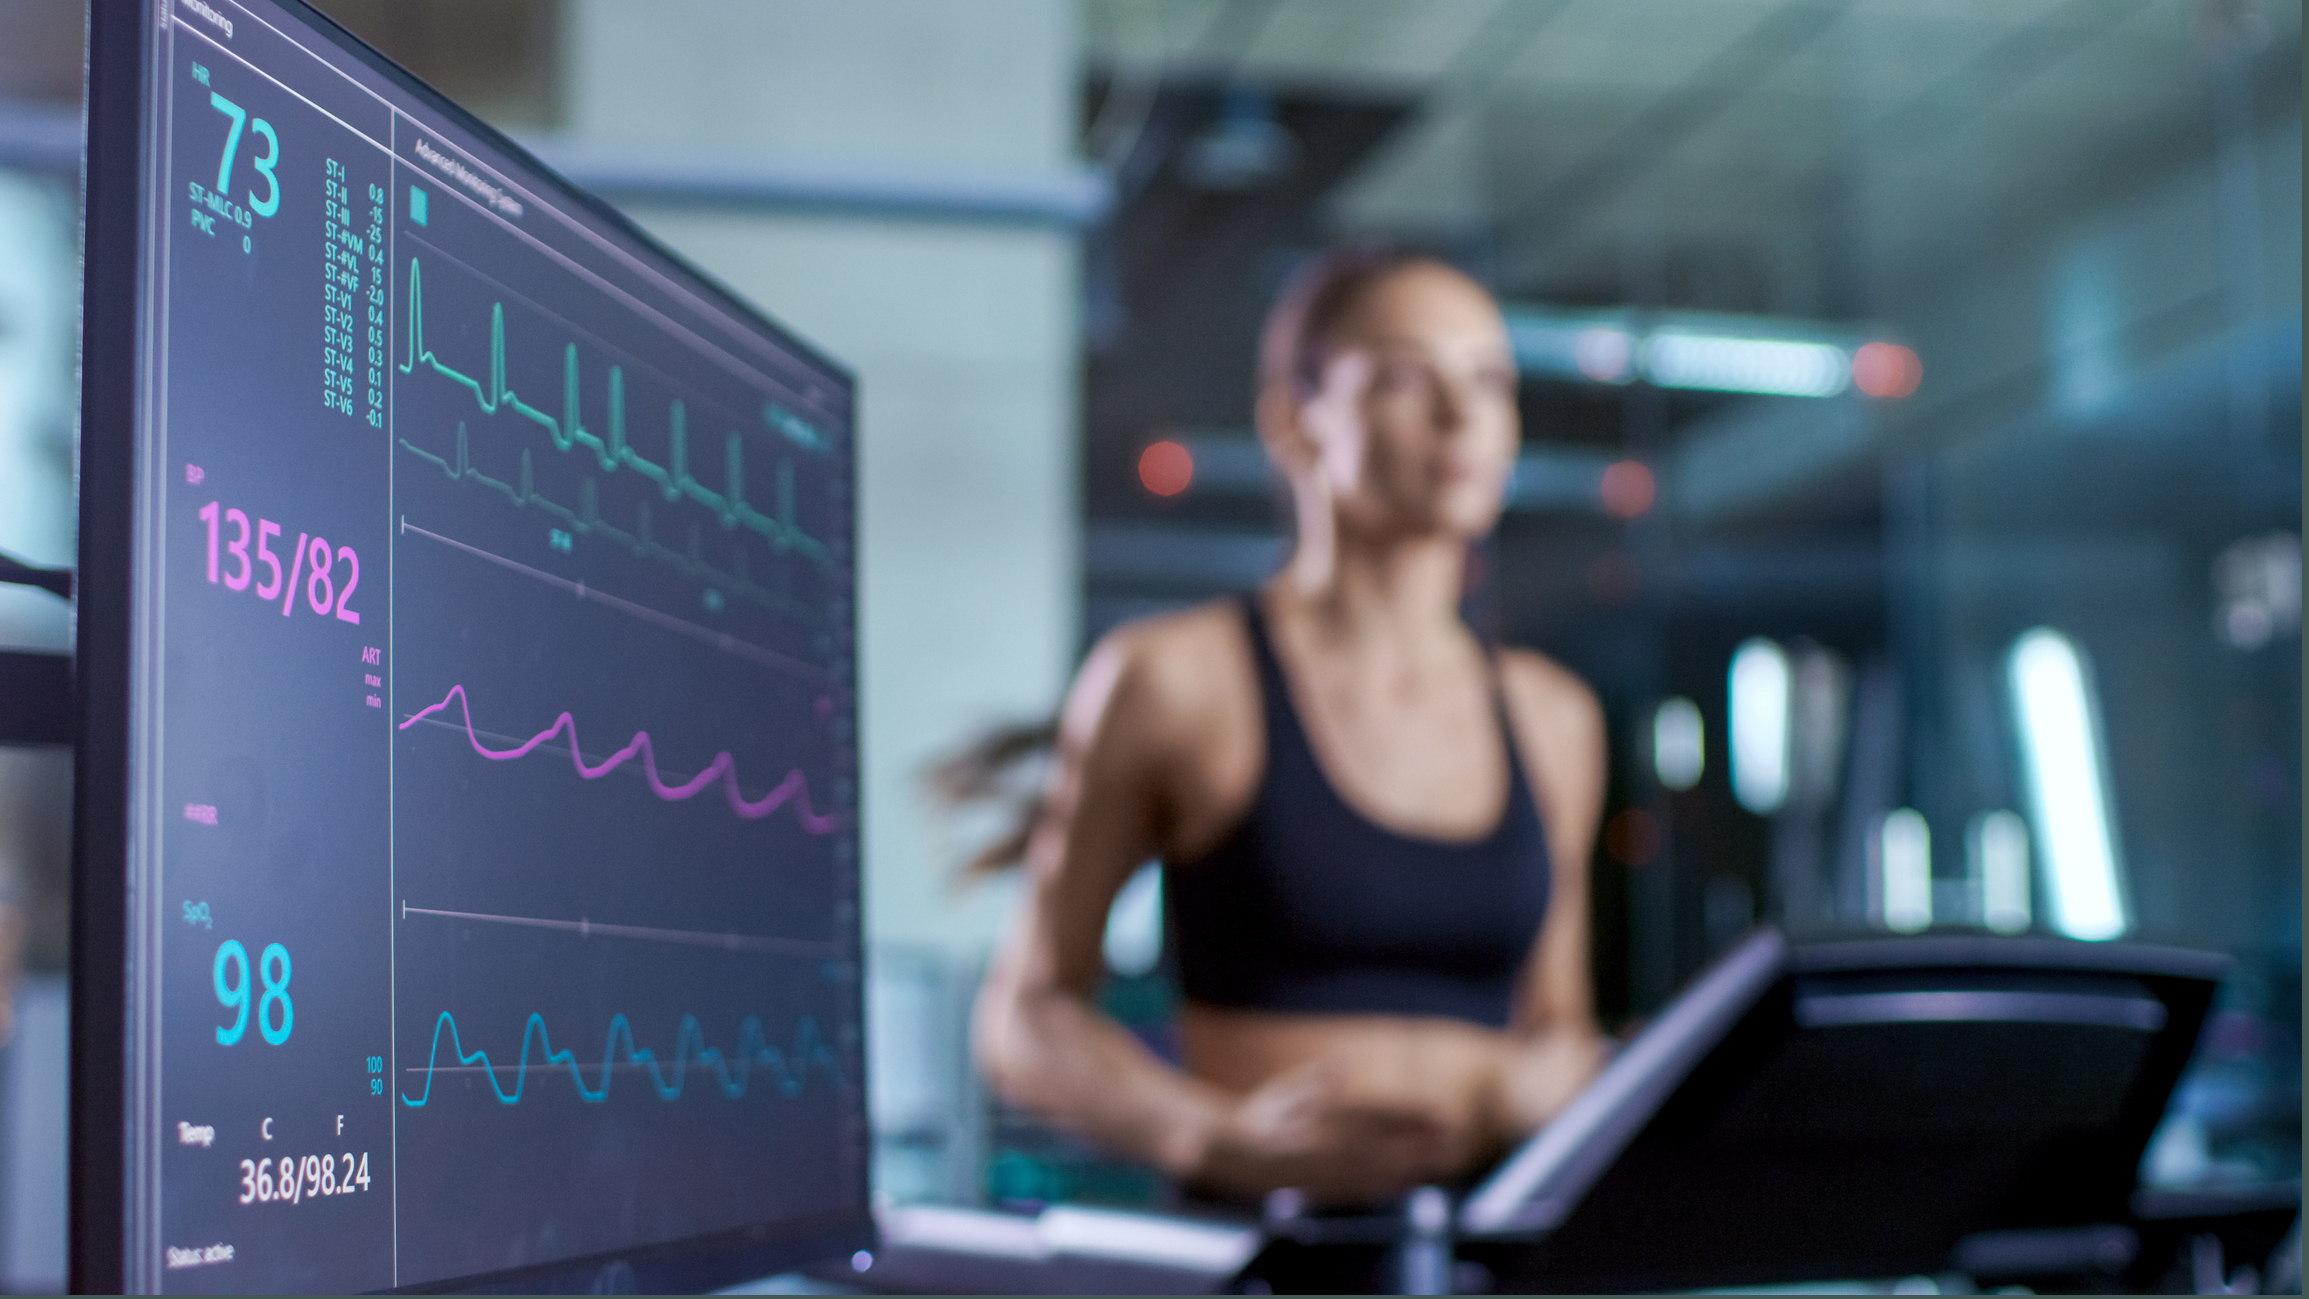 Computer screen with data and woman on treadmill